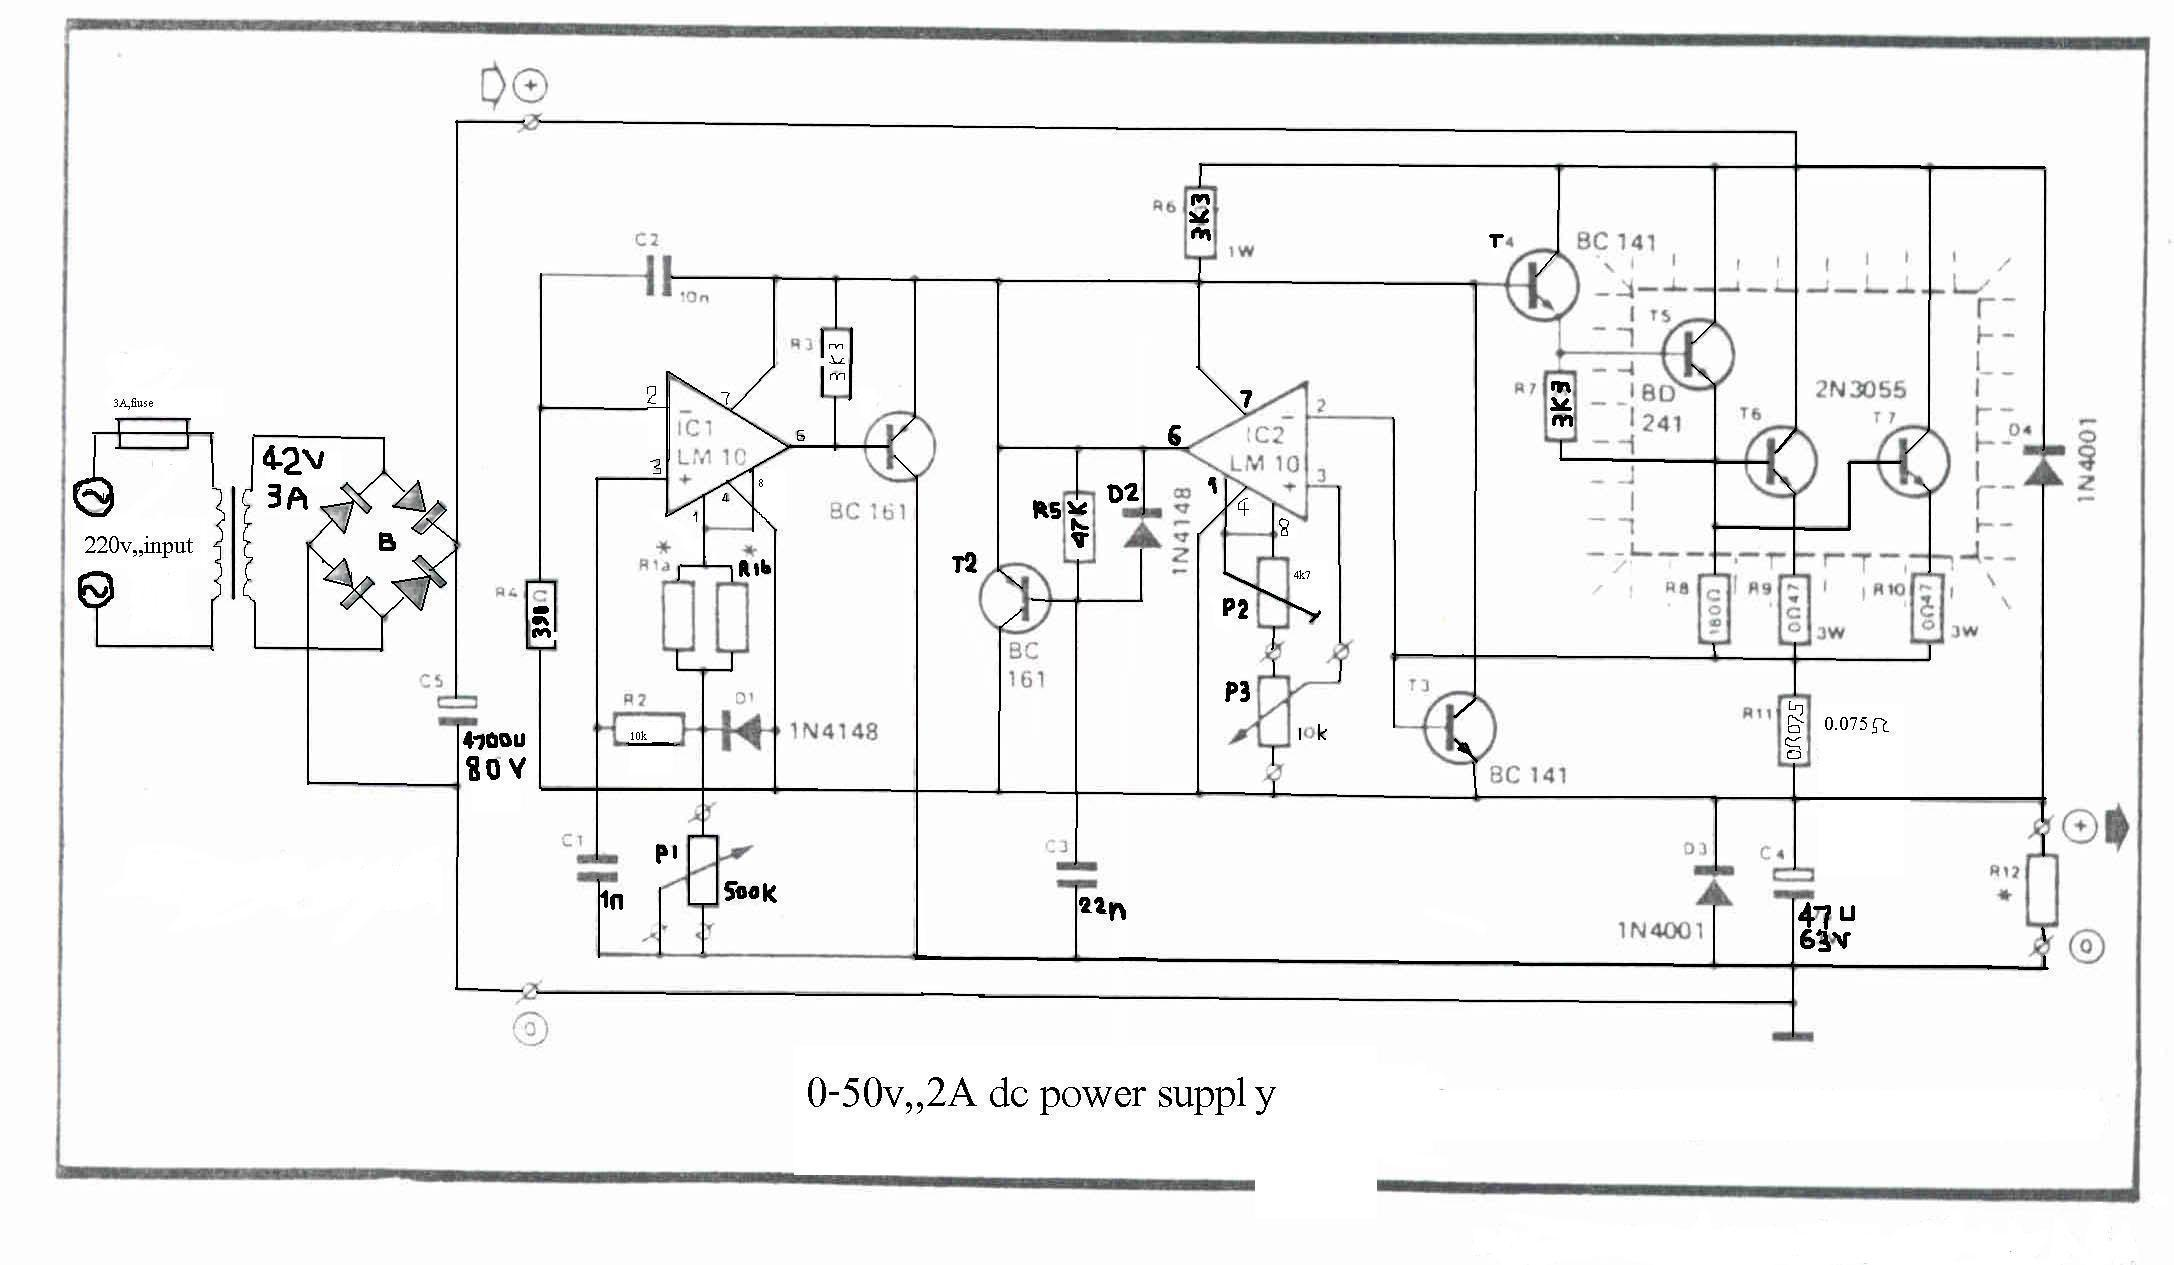 B C Voltage Regulator Wiring Diagram 36 Images Circuit 0 50v 2a Bench Power Supply Orig How To Build